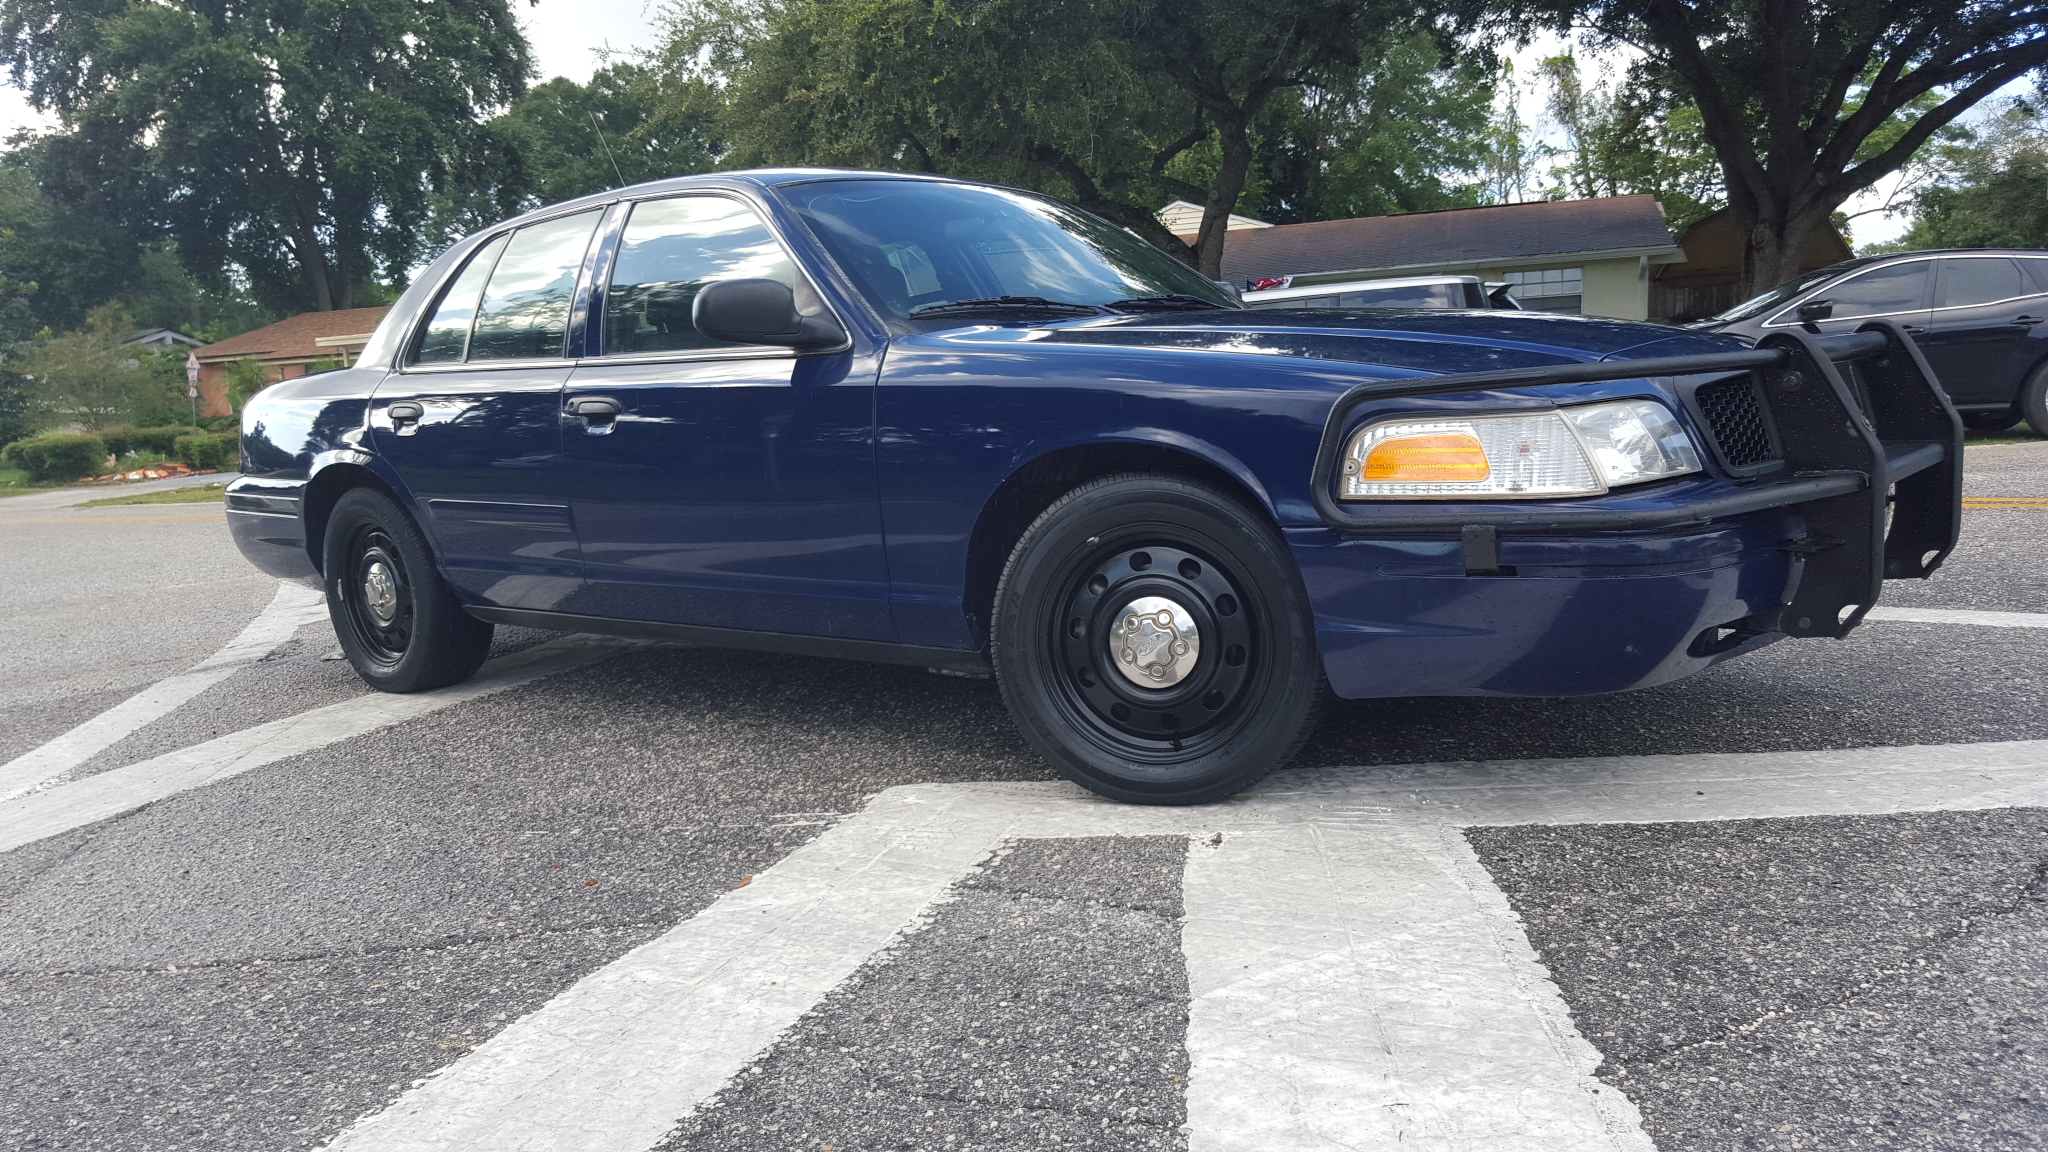 Ford Crown Victoria P71 Police Interceptors from SWPS.com  |Blue Ford Interceptor